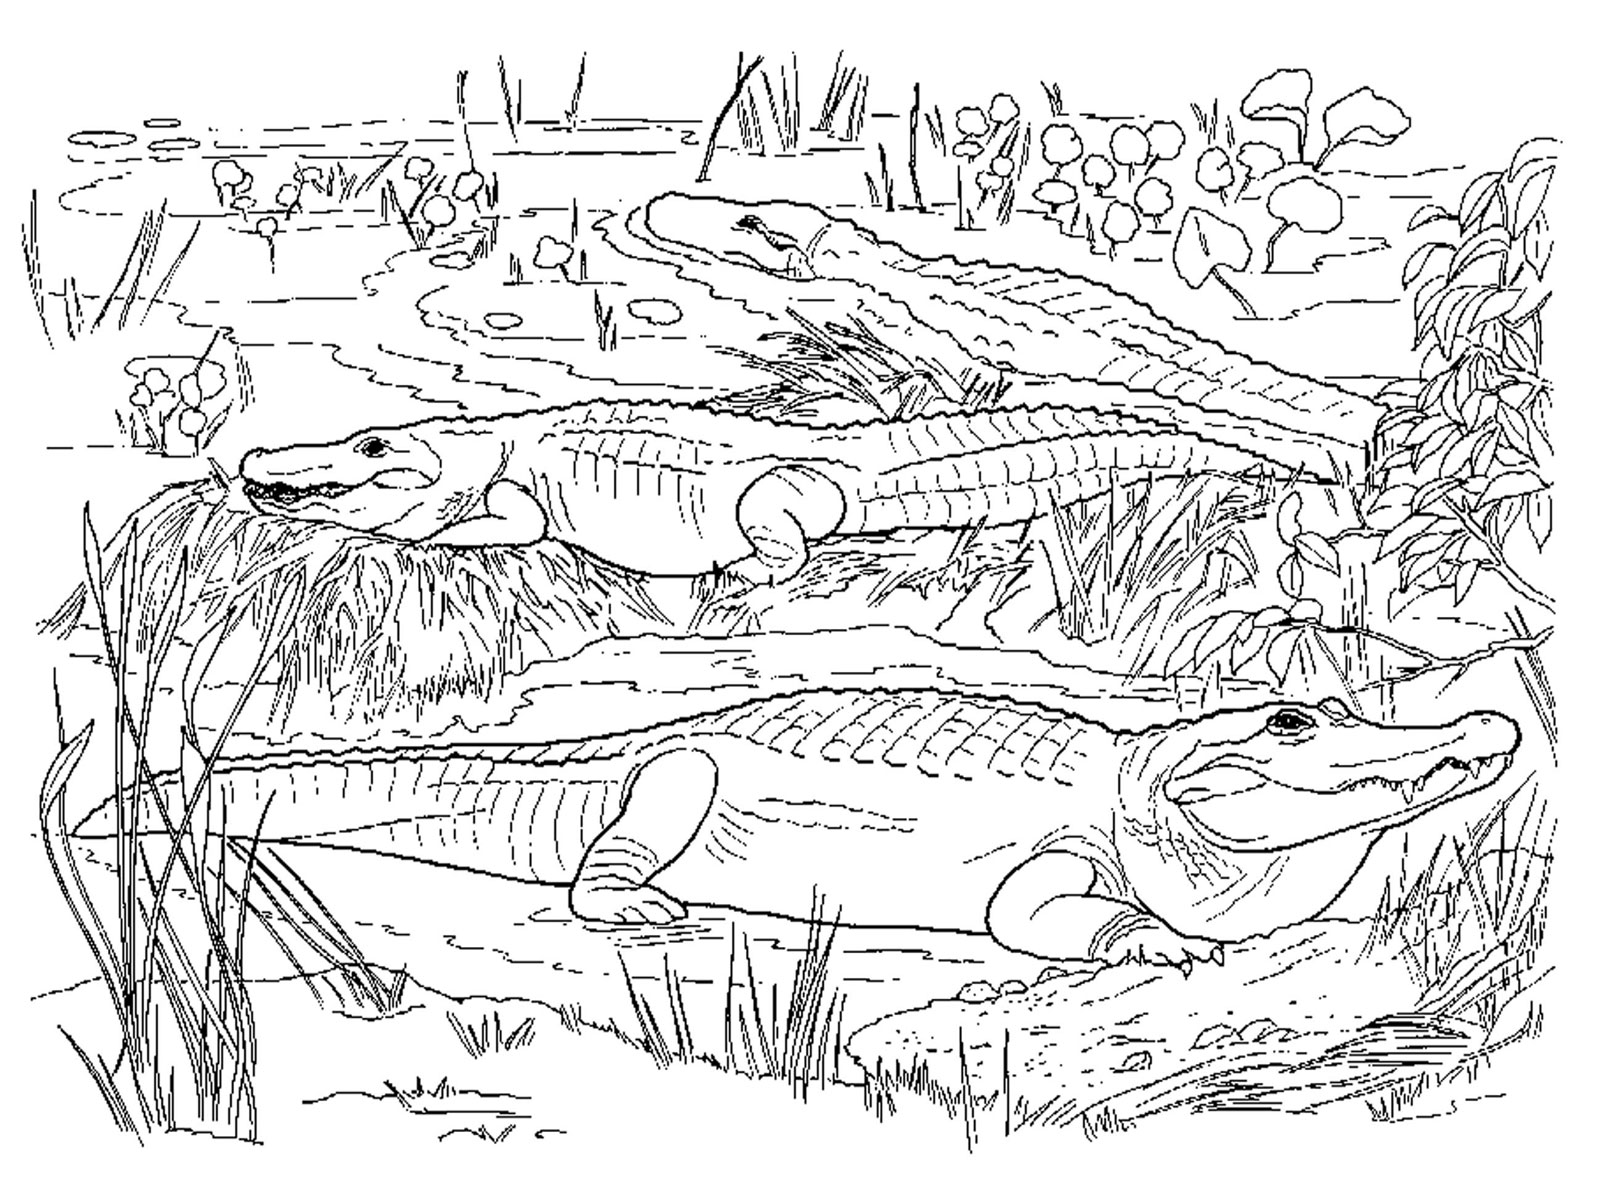 Clip Art Killer Croc Coloring Pages crocodile coloring page eassume com alligators and crocodiles pages download print for free